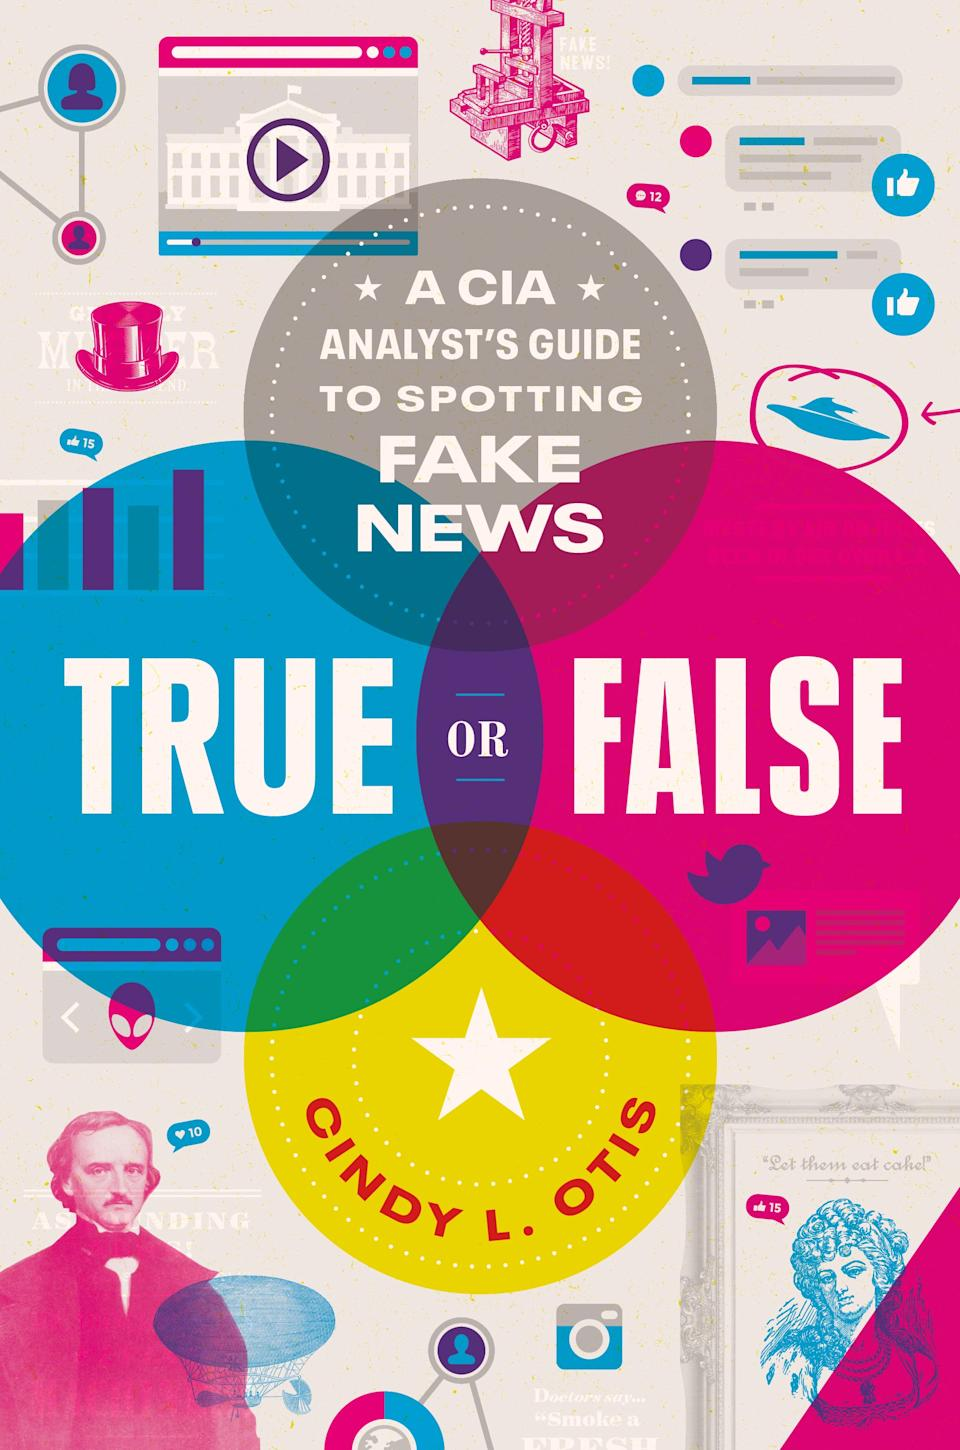 """True or False: A CIA Analyst's Guide to Spotting Fake News,"" by Cindy L. Otis, was published July 28, 2020."